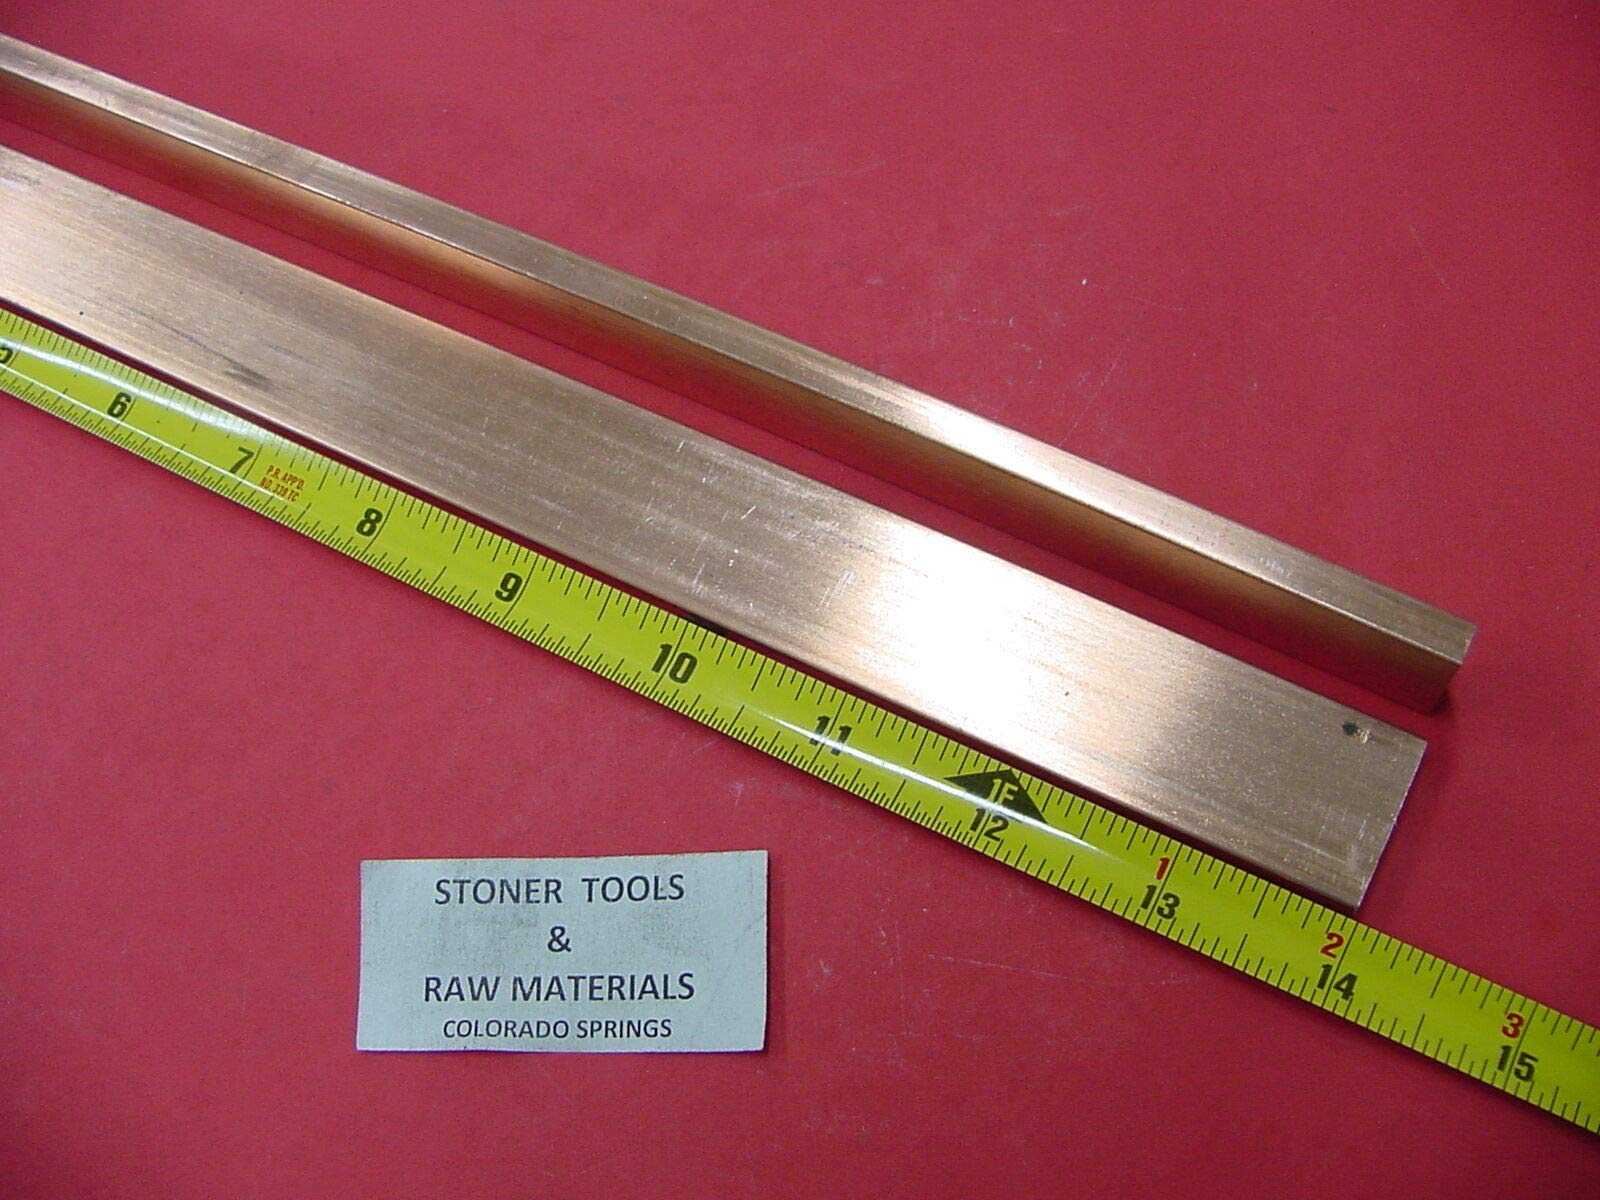 2 Pieces 1/4''x 1'' C110 Copper BAR 14'' Long Solid Flat Bar Mill Bus Bar Stock H02 by Okumahome